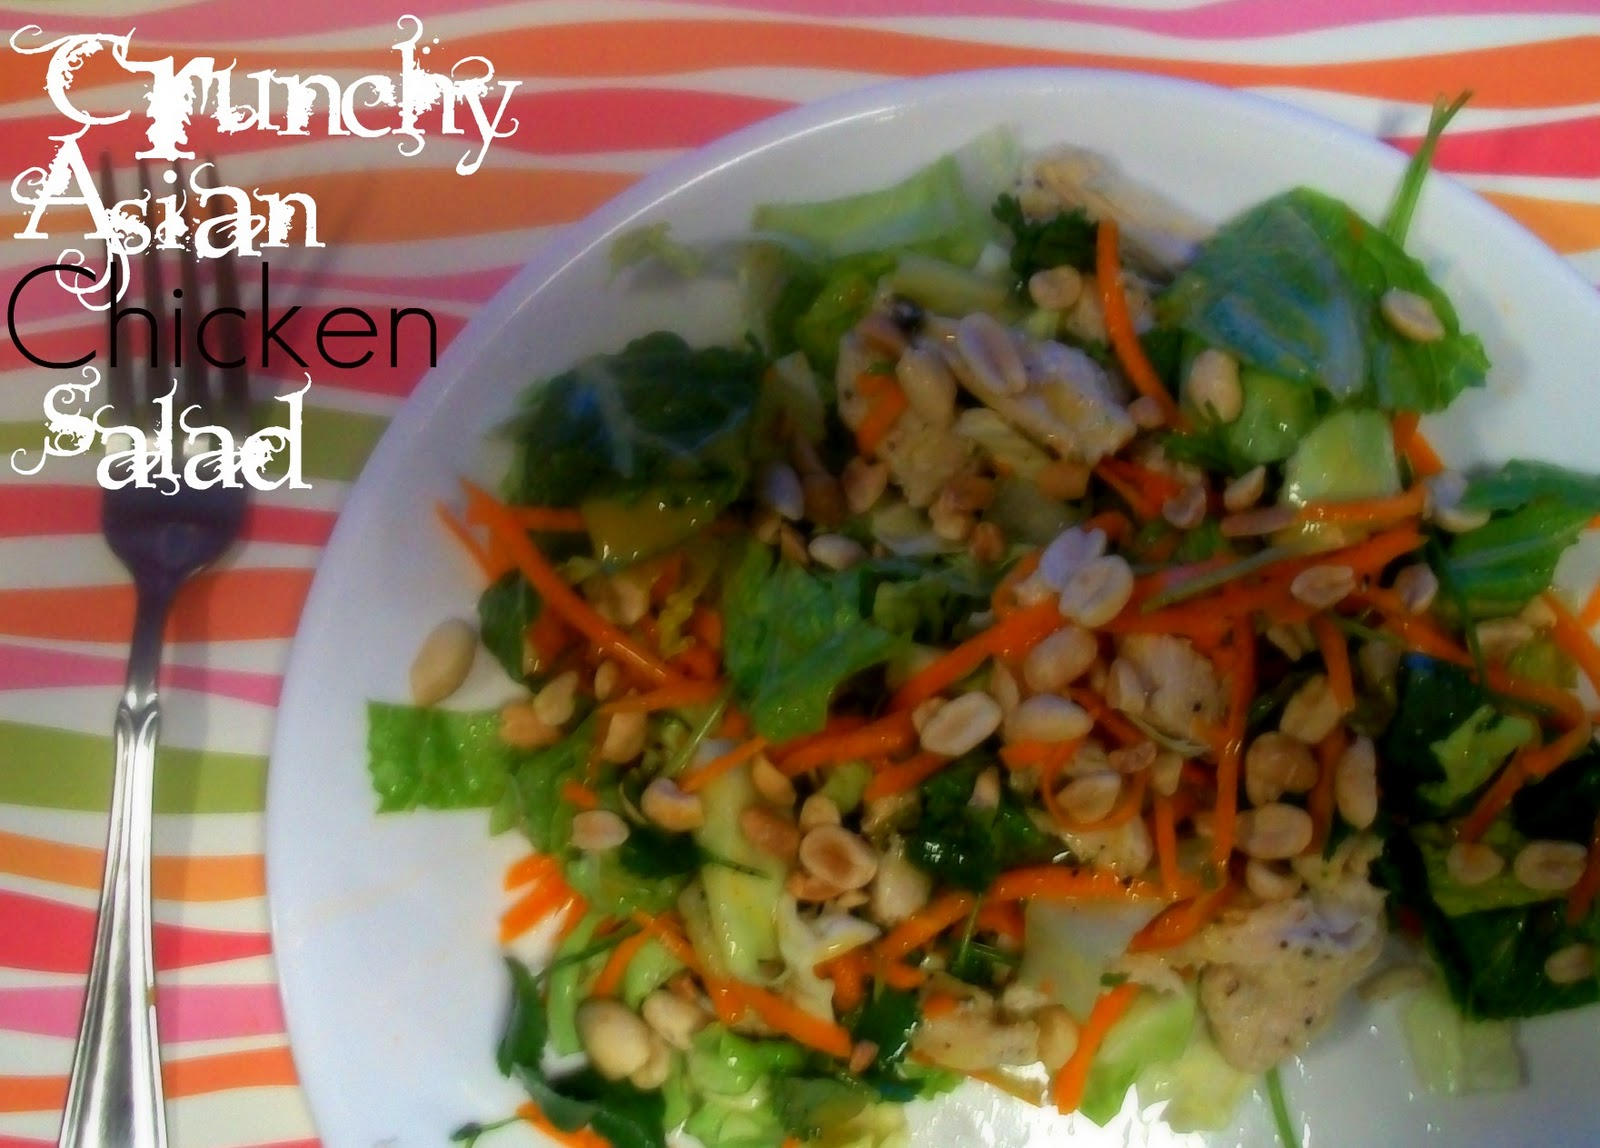 The Farm Girl Recipes: Crunchy Asian Chicken Salad